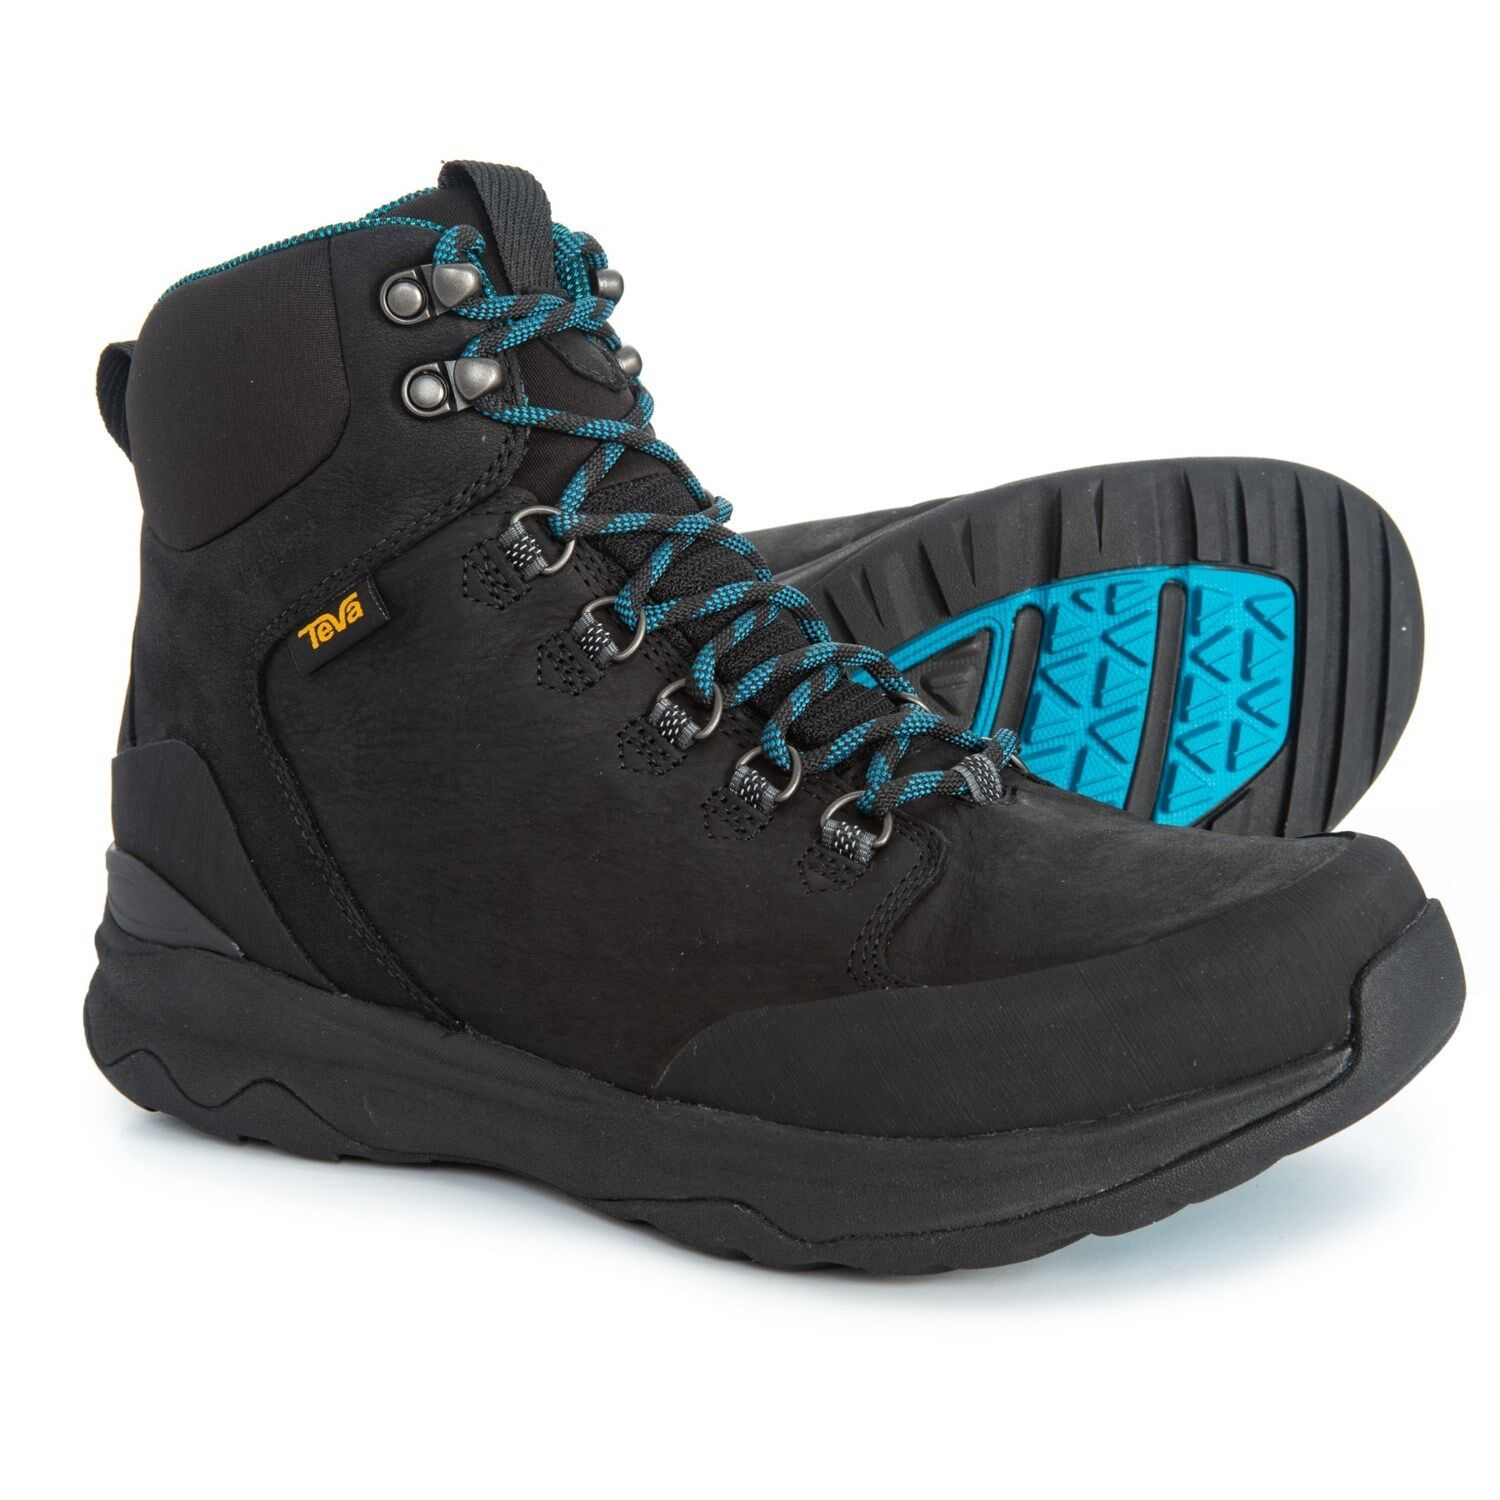 New Men`s Teva Arrowood Utility Tall Hiking Boots Waterproof Thinsulate 1018227